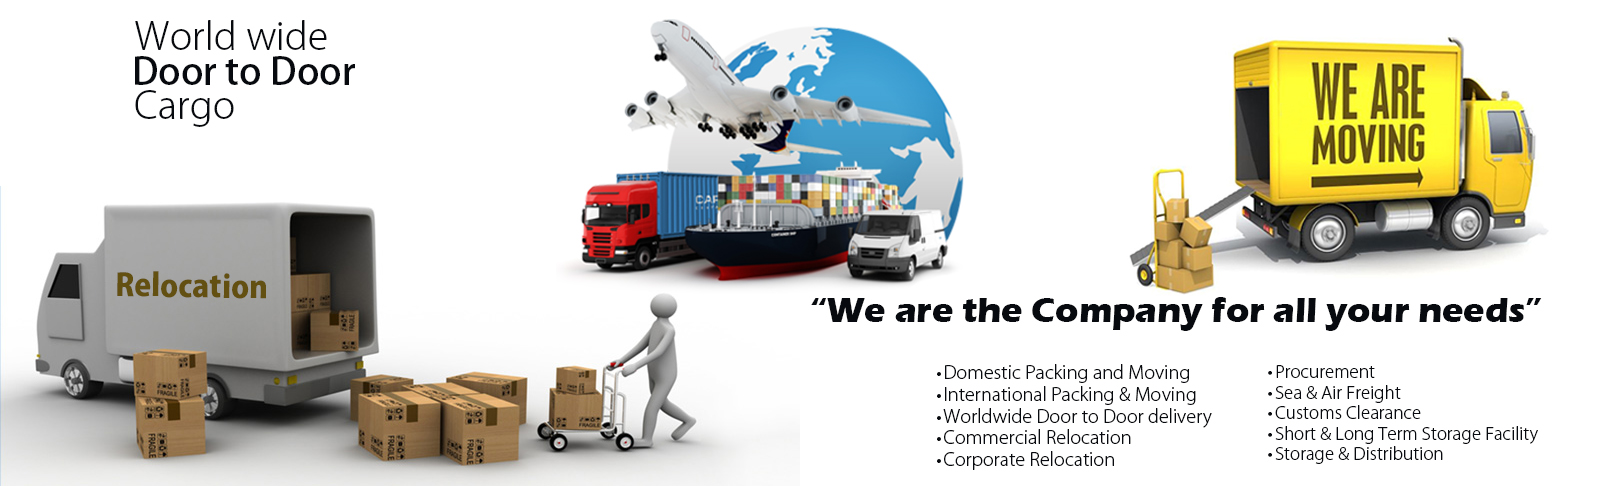 ata cargo logistic and shipping